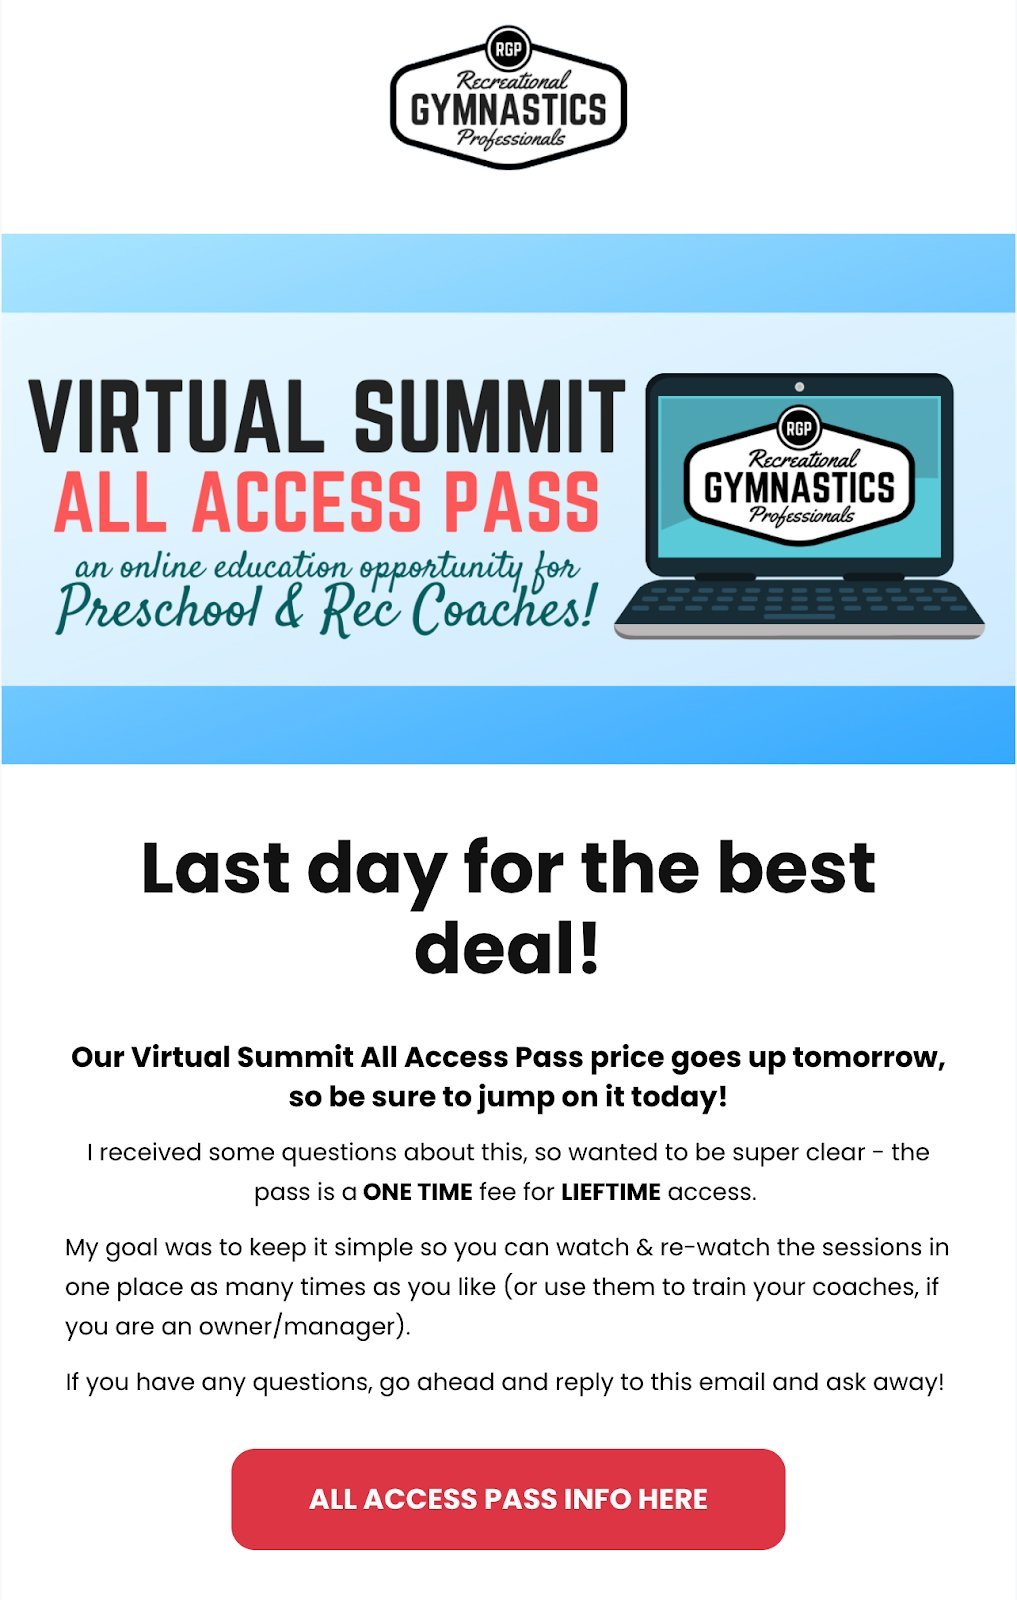 Recreational Gymnastics Professionals fitness newsletter example virtual summit